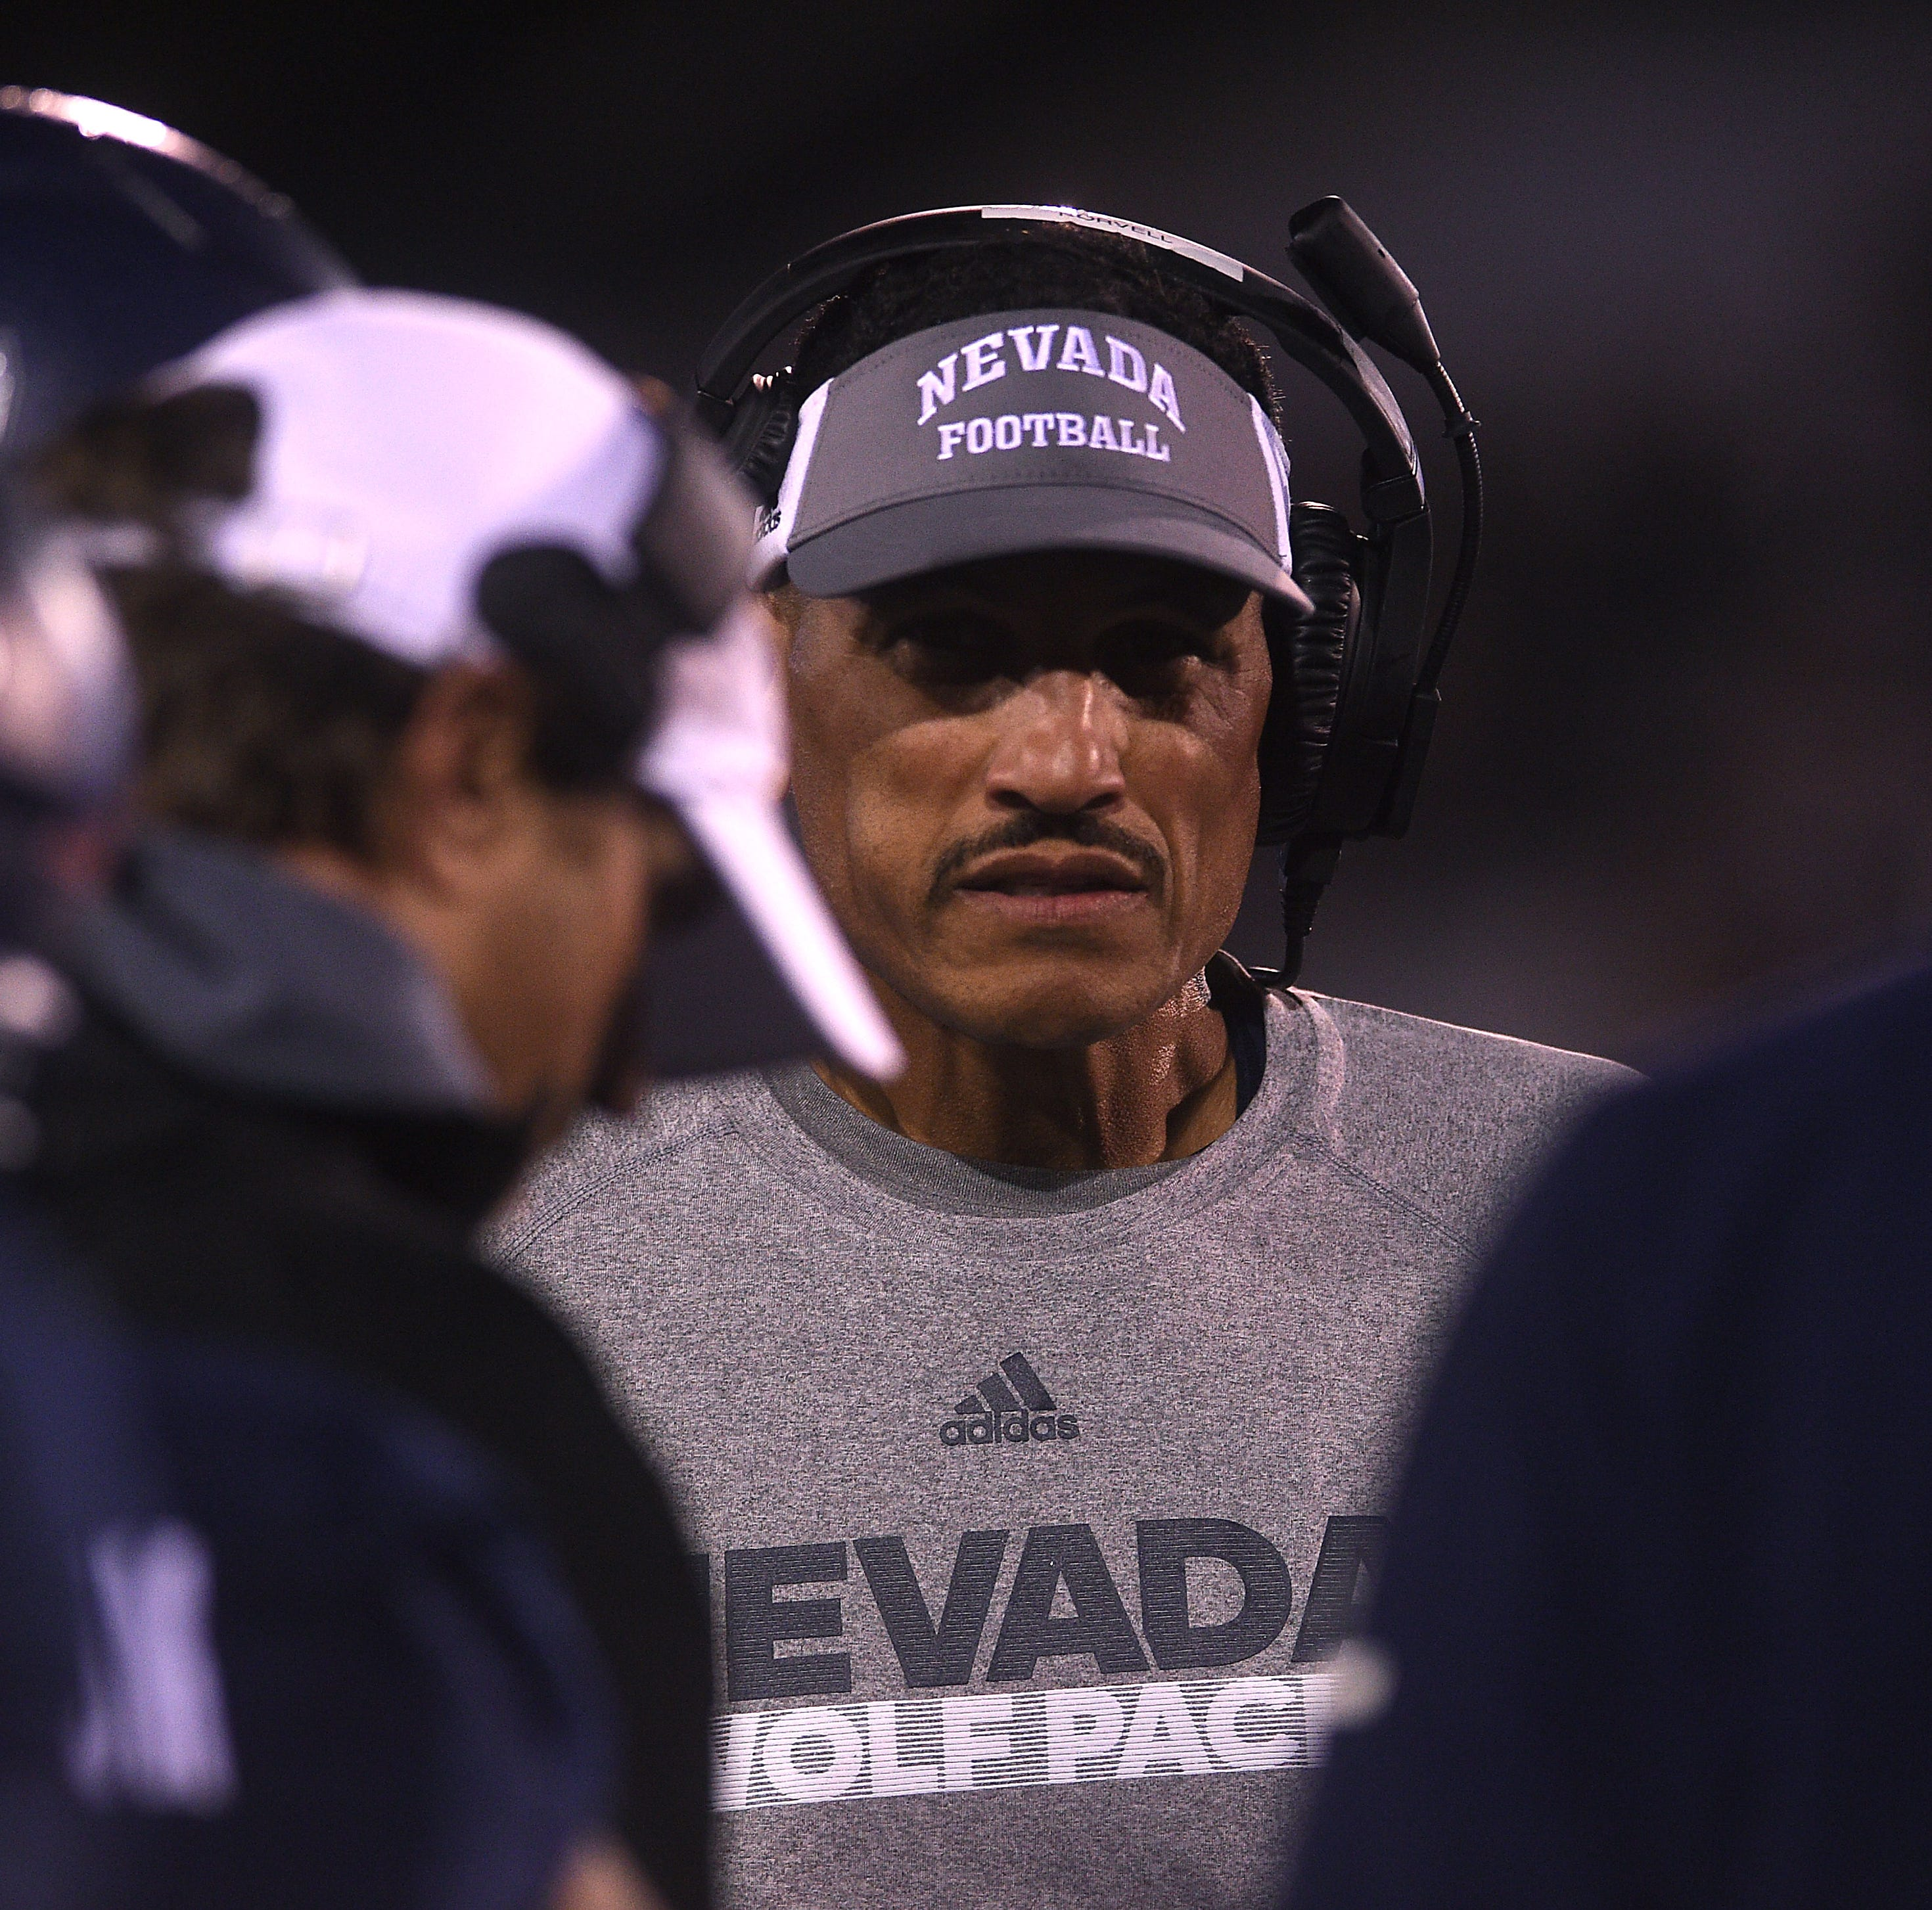 A Norvell homecoming: Wolf Pack adds Iowa game to 2022 schedule